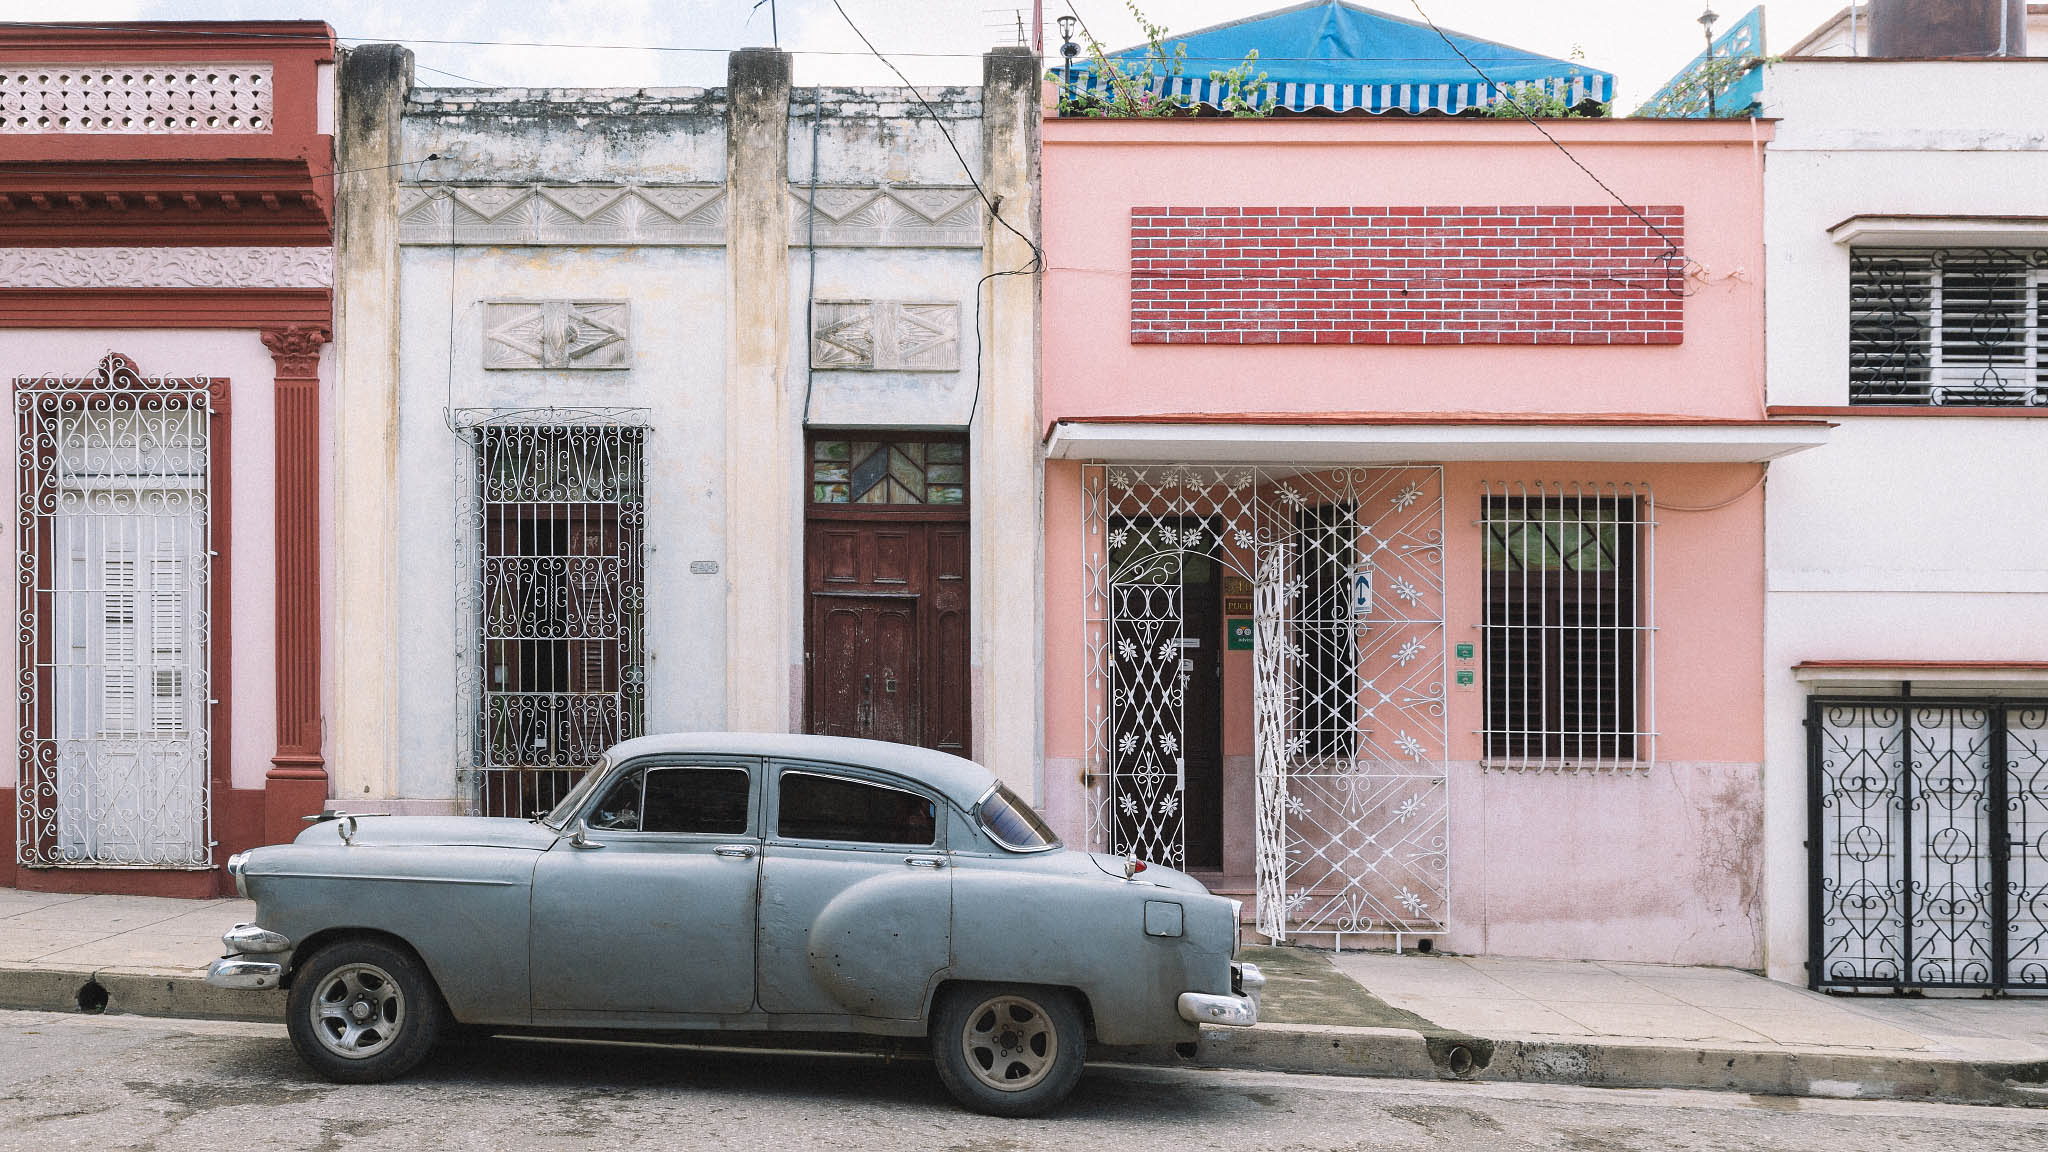 Vintage car in Cienfuegos